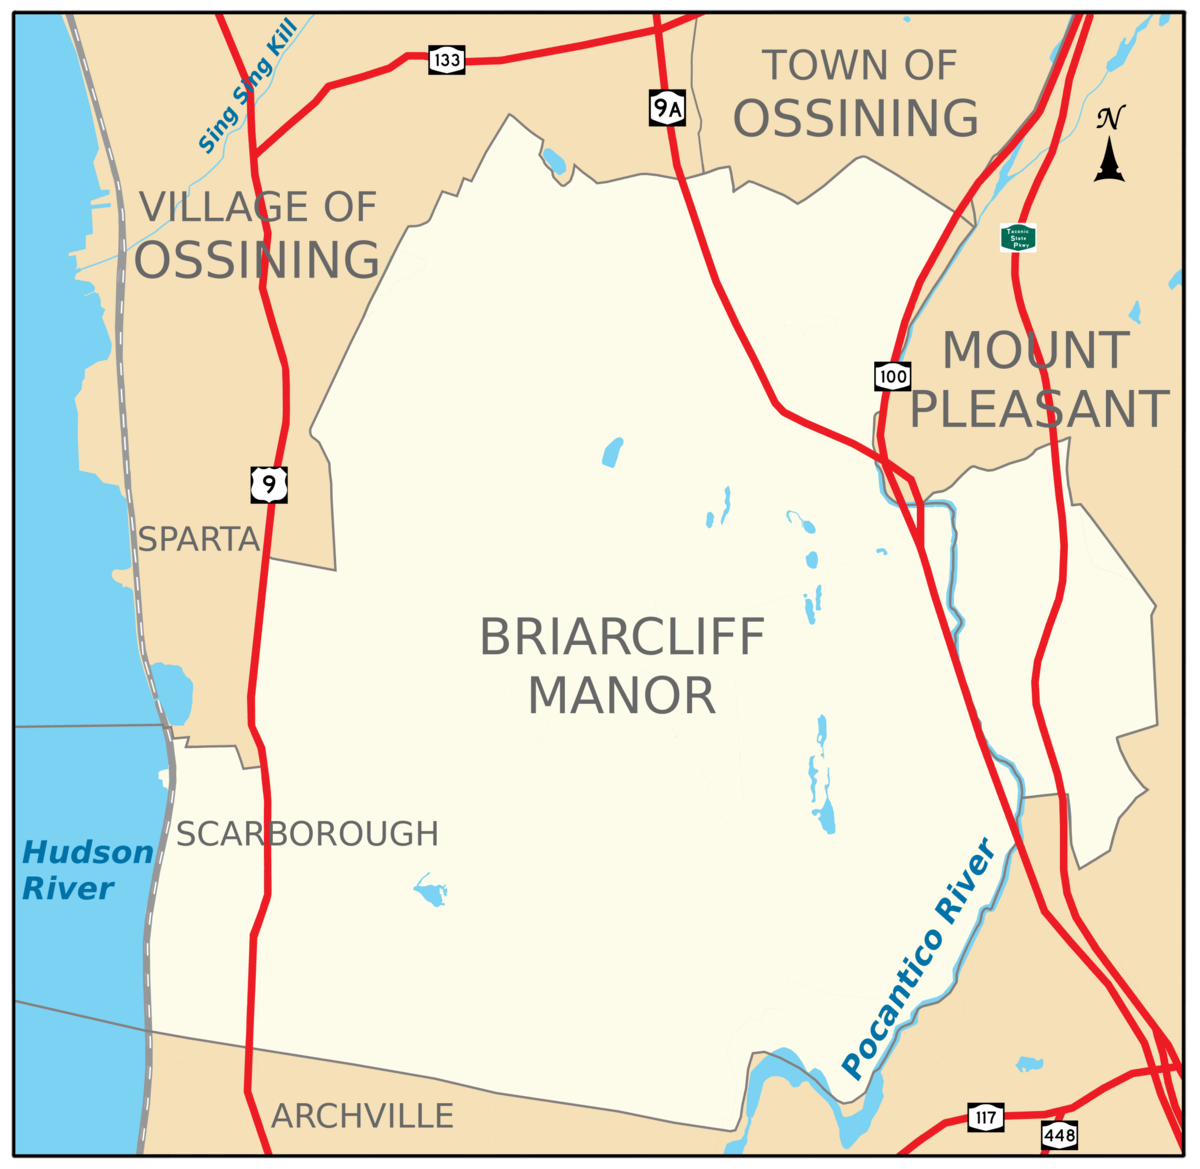 Briarcliff Manor: Travel Guide At Wikivoyage